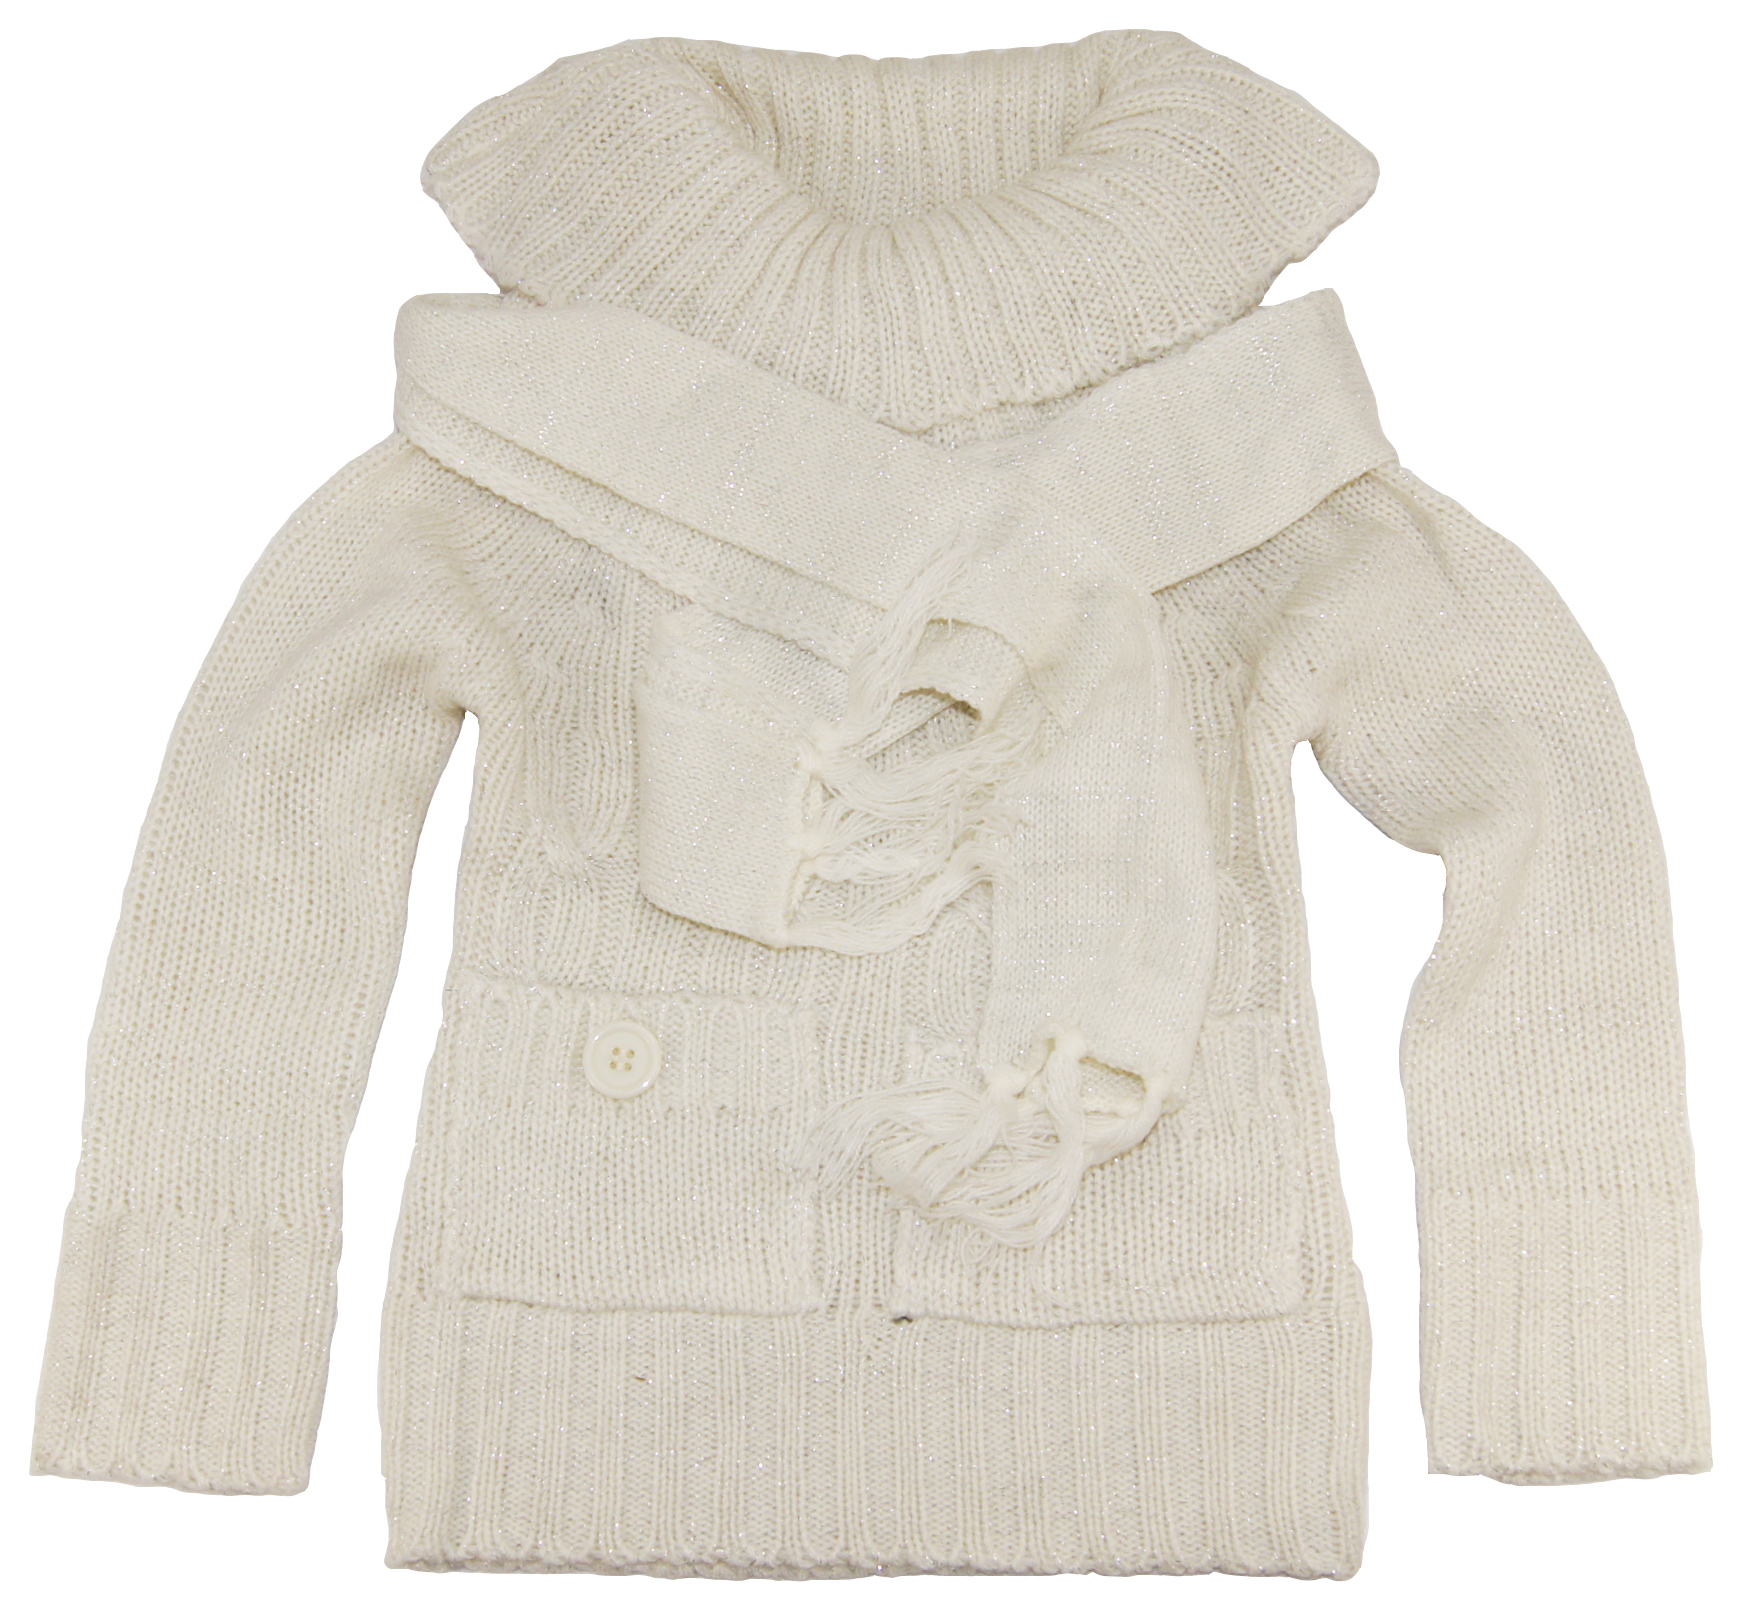 Dollhouse Toddler Girls 2-6X White Turtleneck Cardigan Sweater with Scarf Set at Sears.com